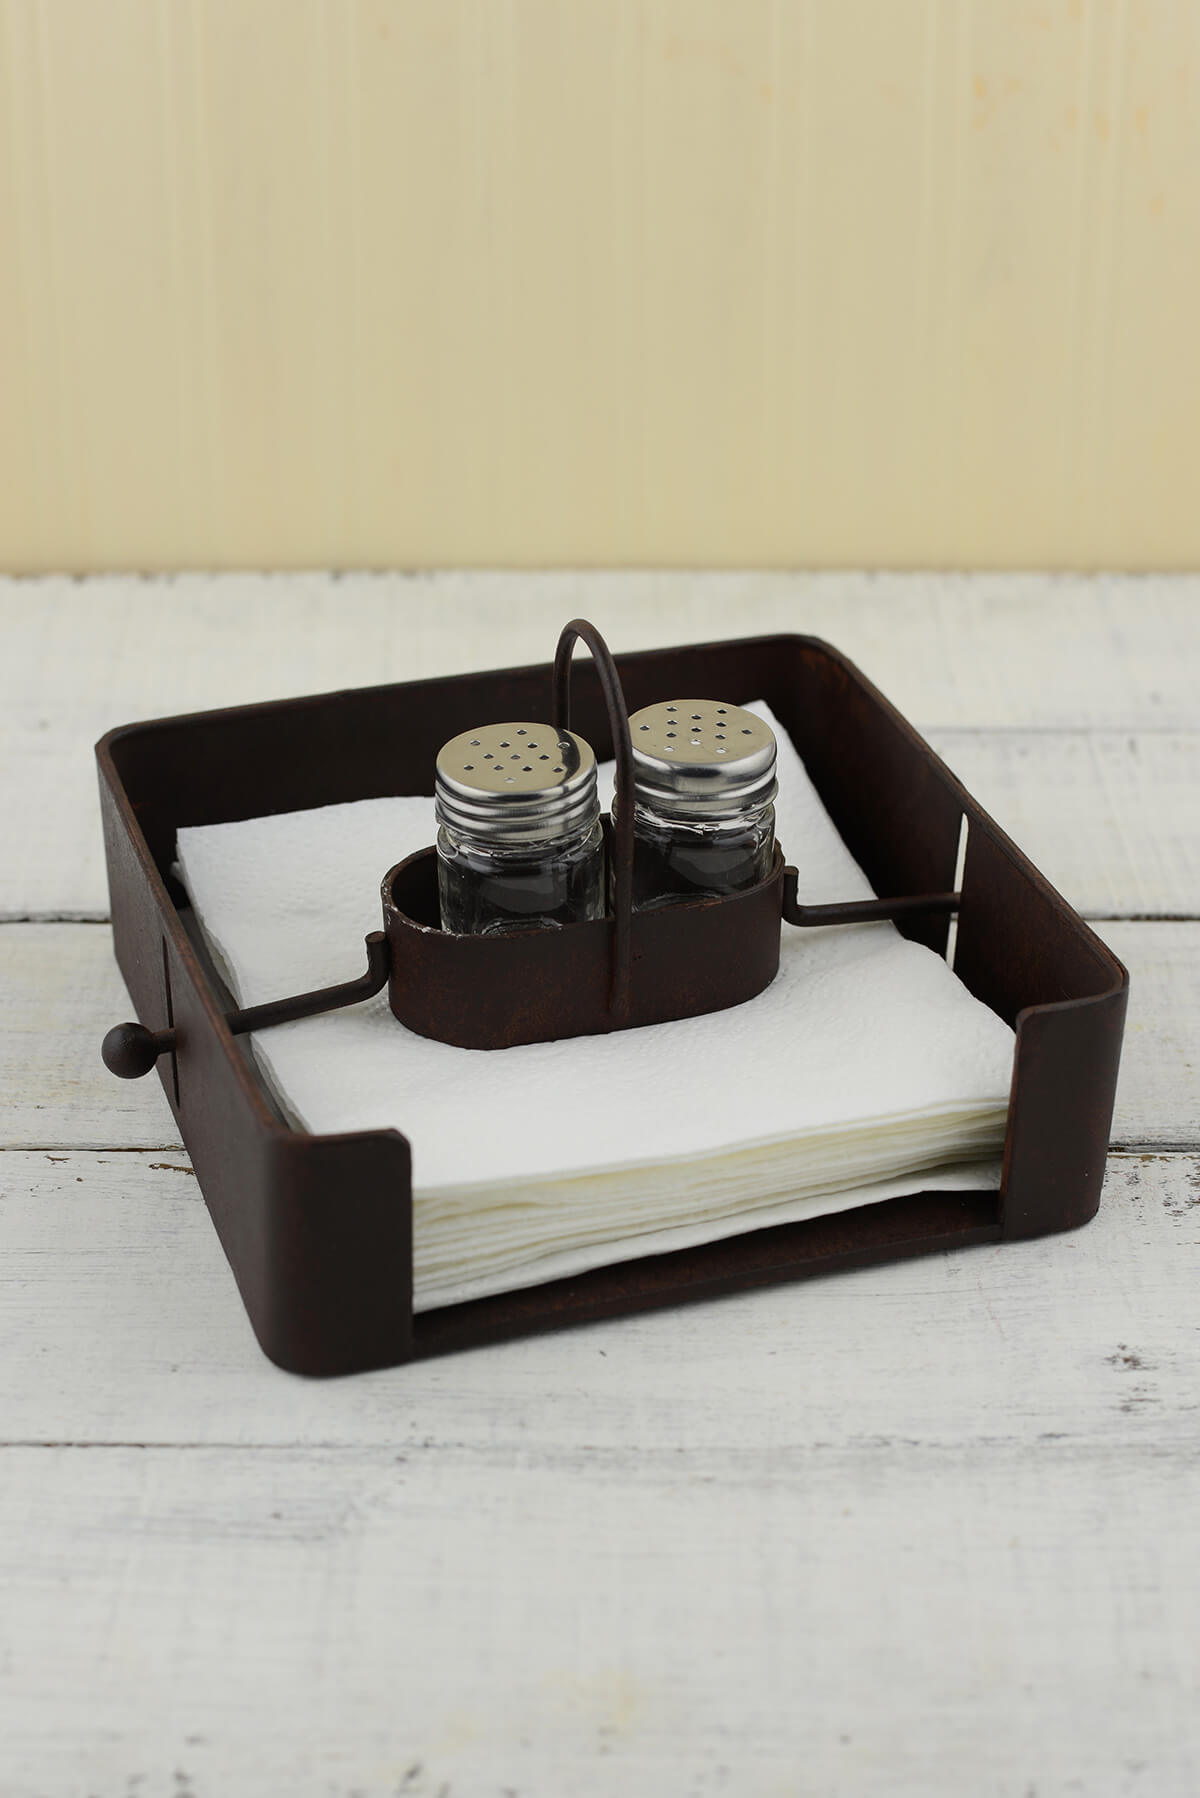 Iron Napkin Holder with Salt & Pepper Shakers